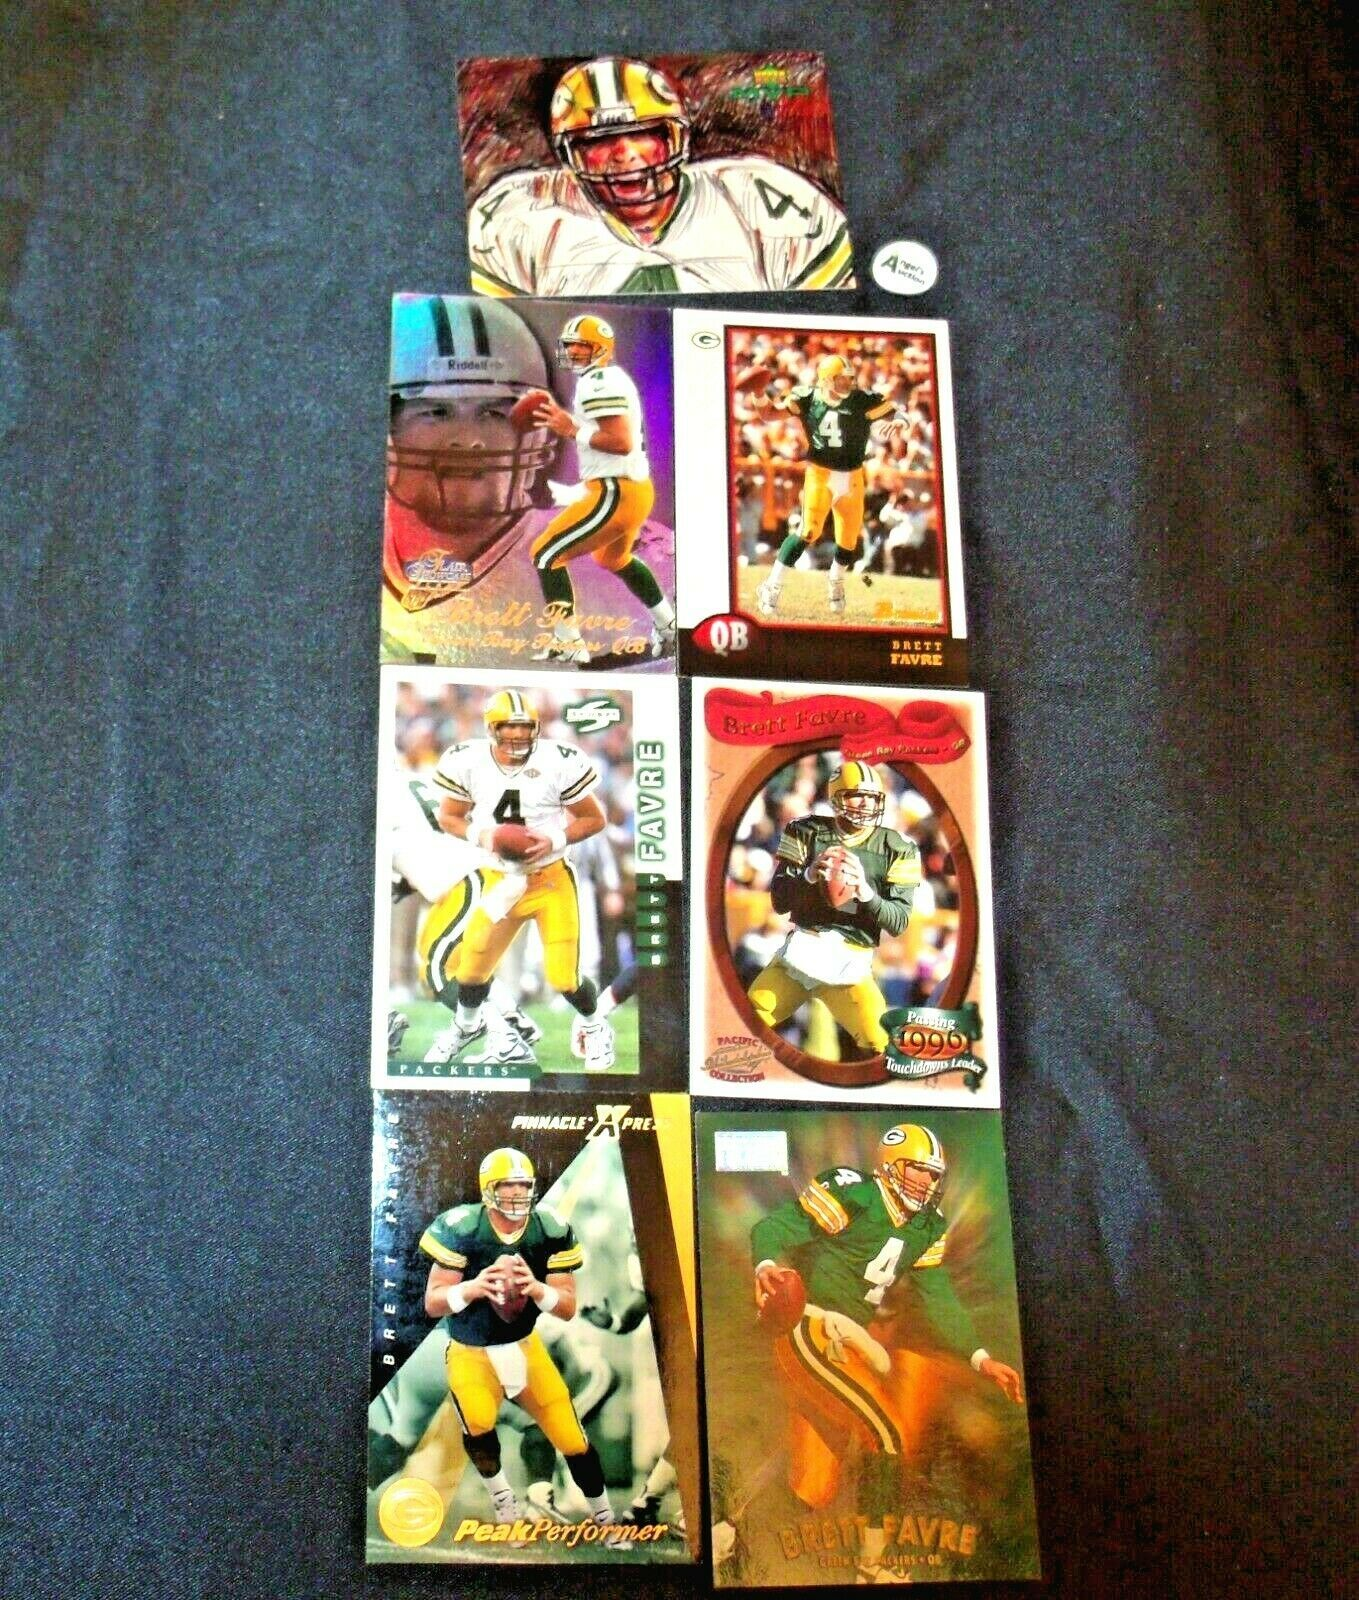 Brett Farve # 4 Green Bay Packers QB Football Trading Cards AA-19 FTC3002 Vintag